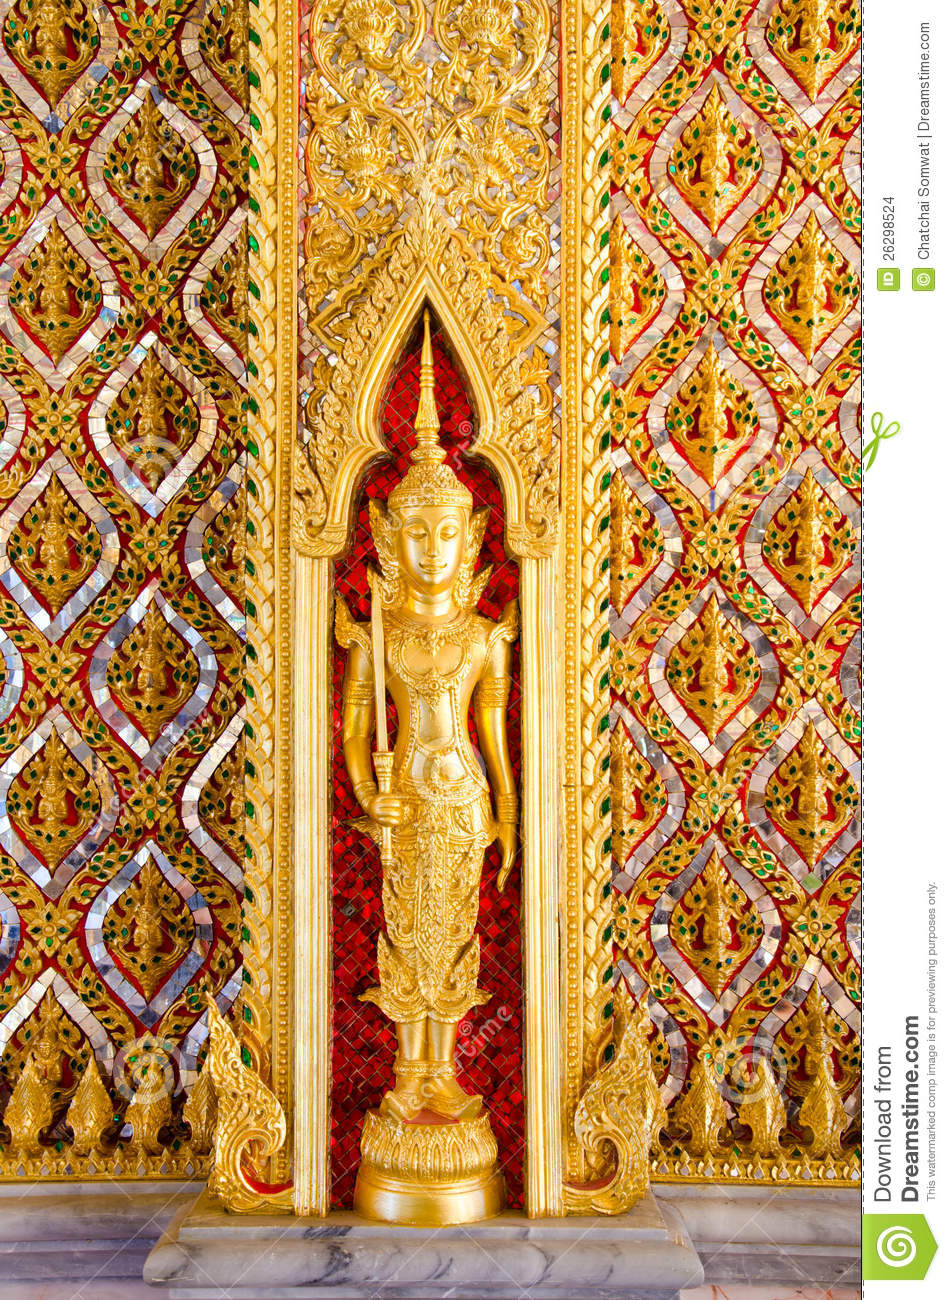 Thai stucco images.